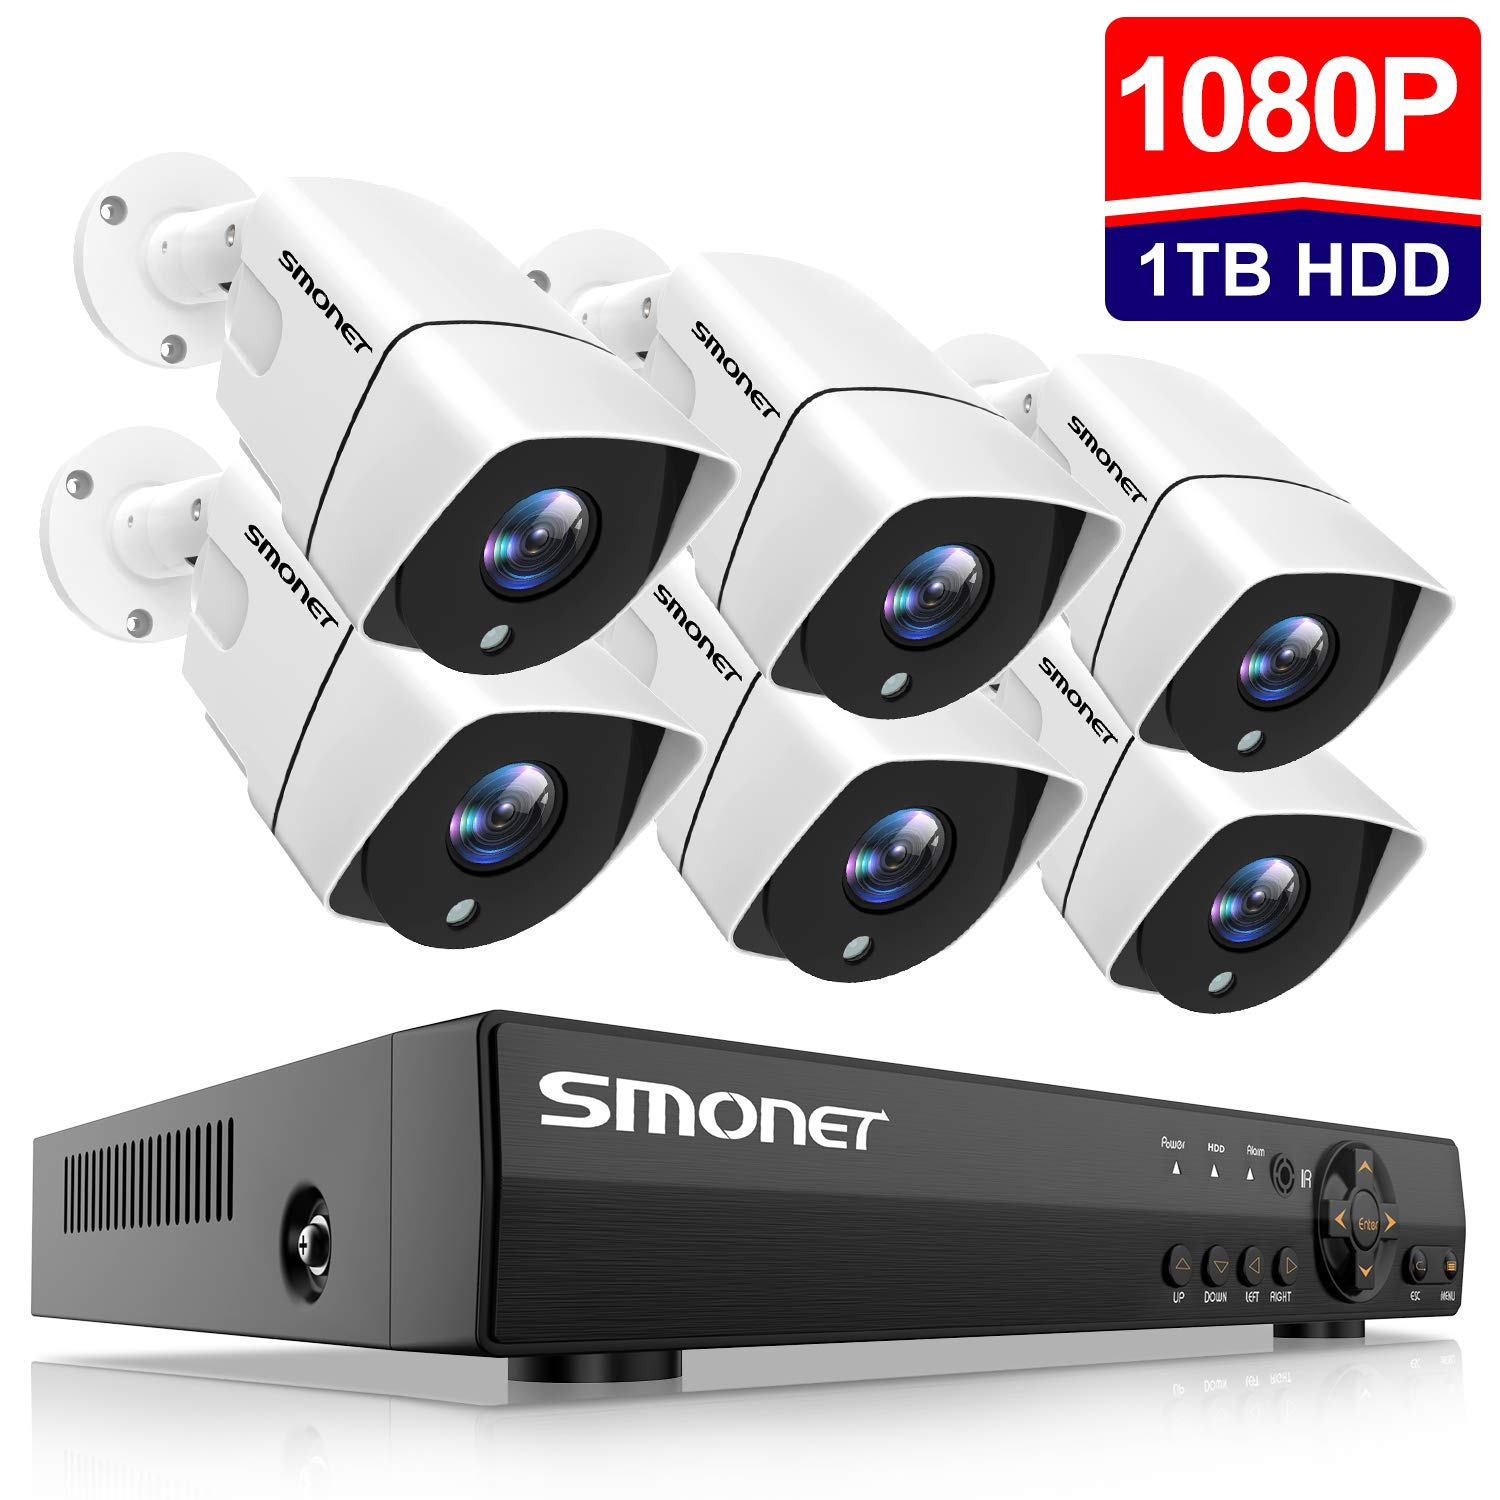 【2019 New】 1080P Security Camera System,SMONET 8-Channel Outdoor/Indoor Surveillance System(1TB Hard Drive),6pcs 1080P(2.0MP) Security Cameras,65ft Night Vision,P2P, Free APP,Easy Remote View by SMONET